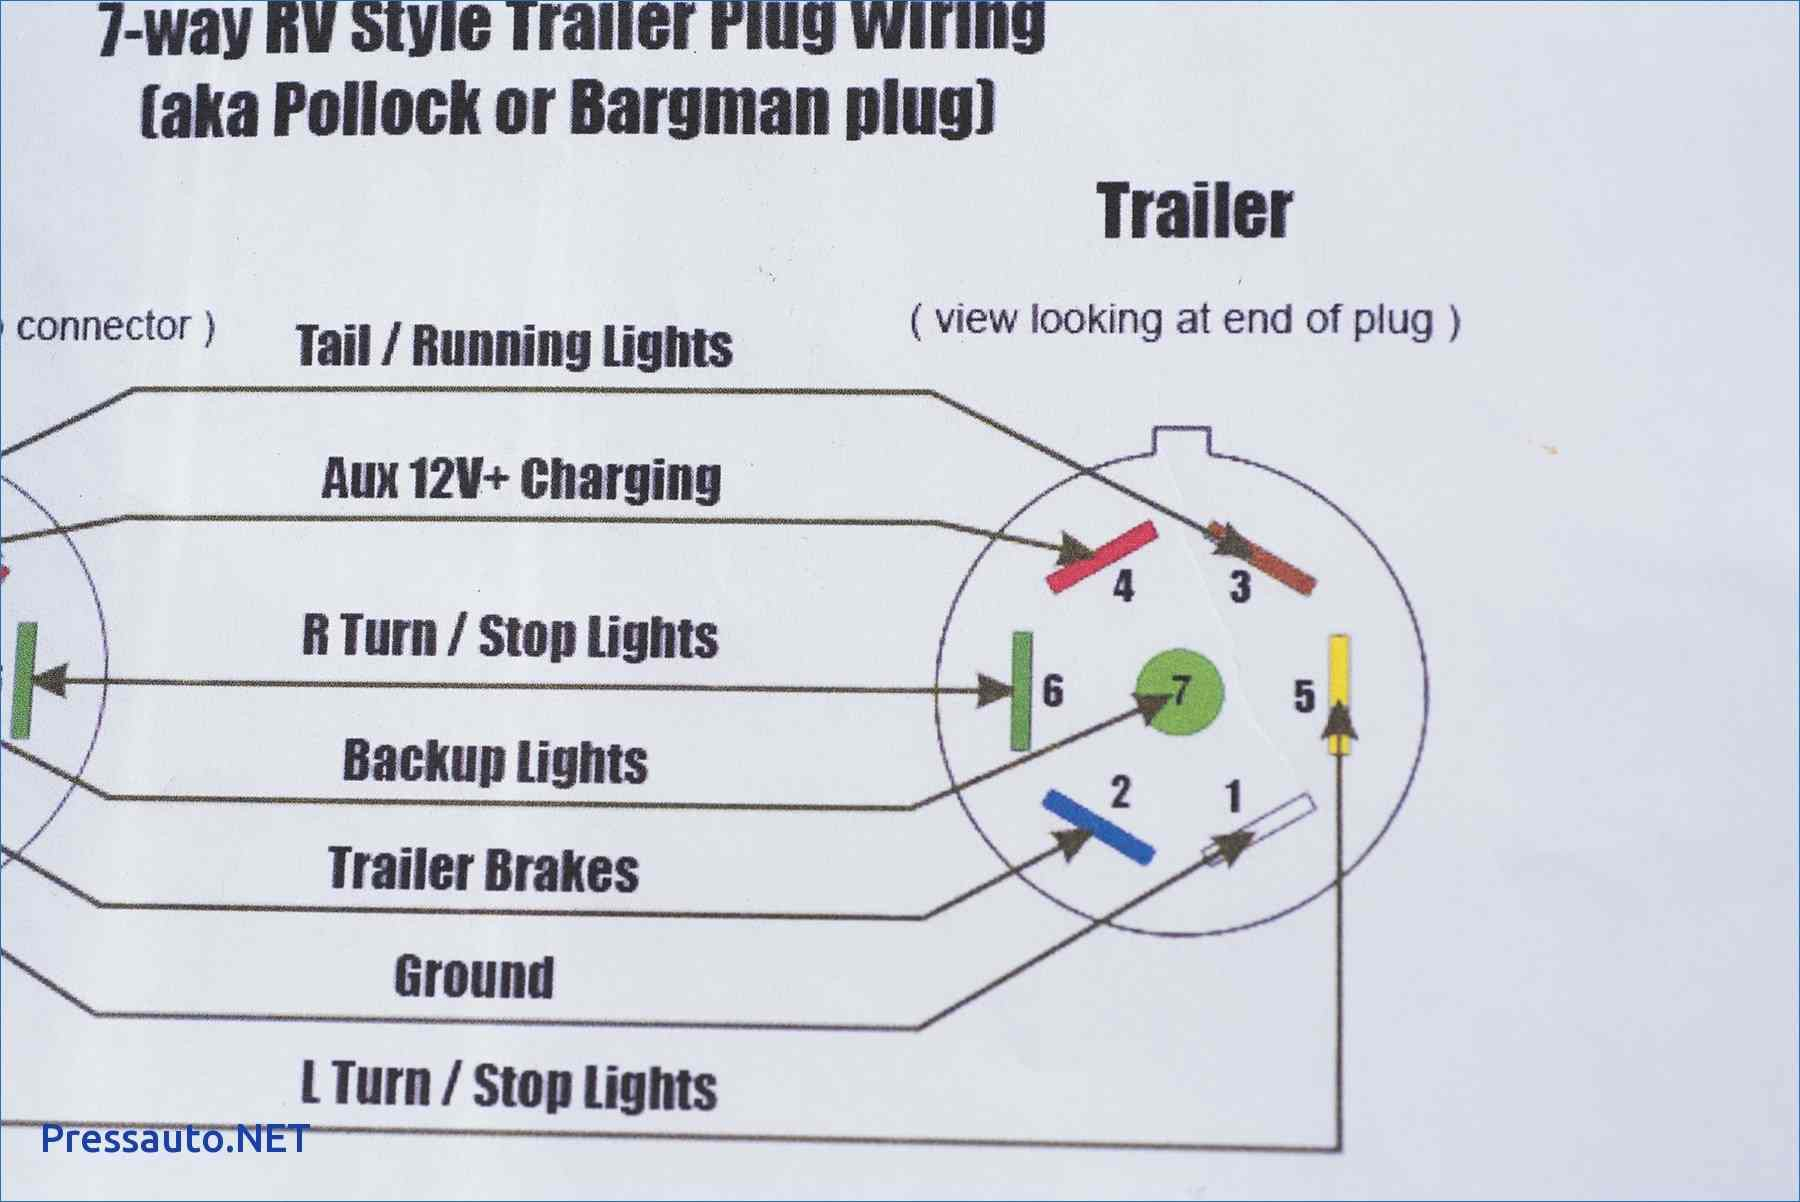 Ford 7 Way Plug Wiring | Manual E-Books - Round Trailer Plug Wiring Diagram